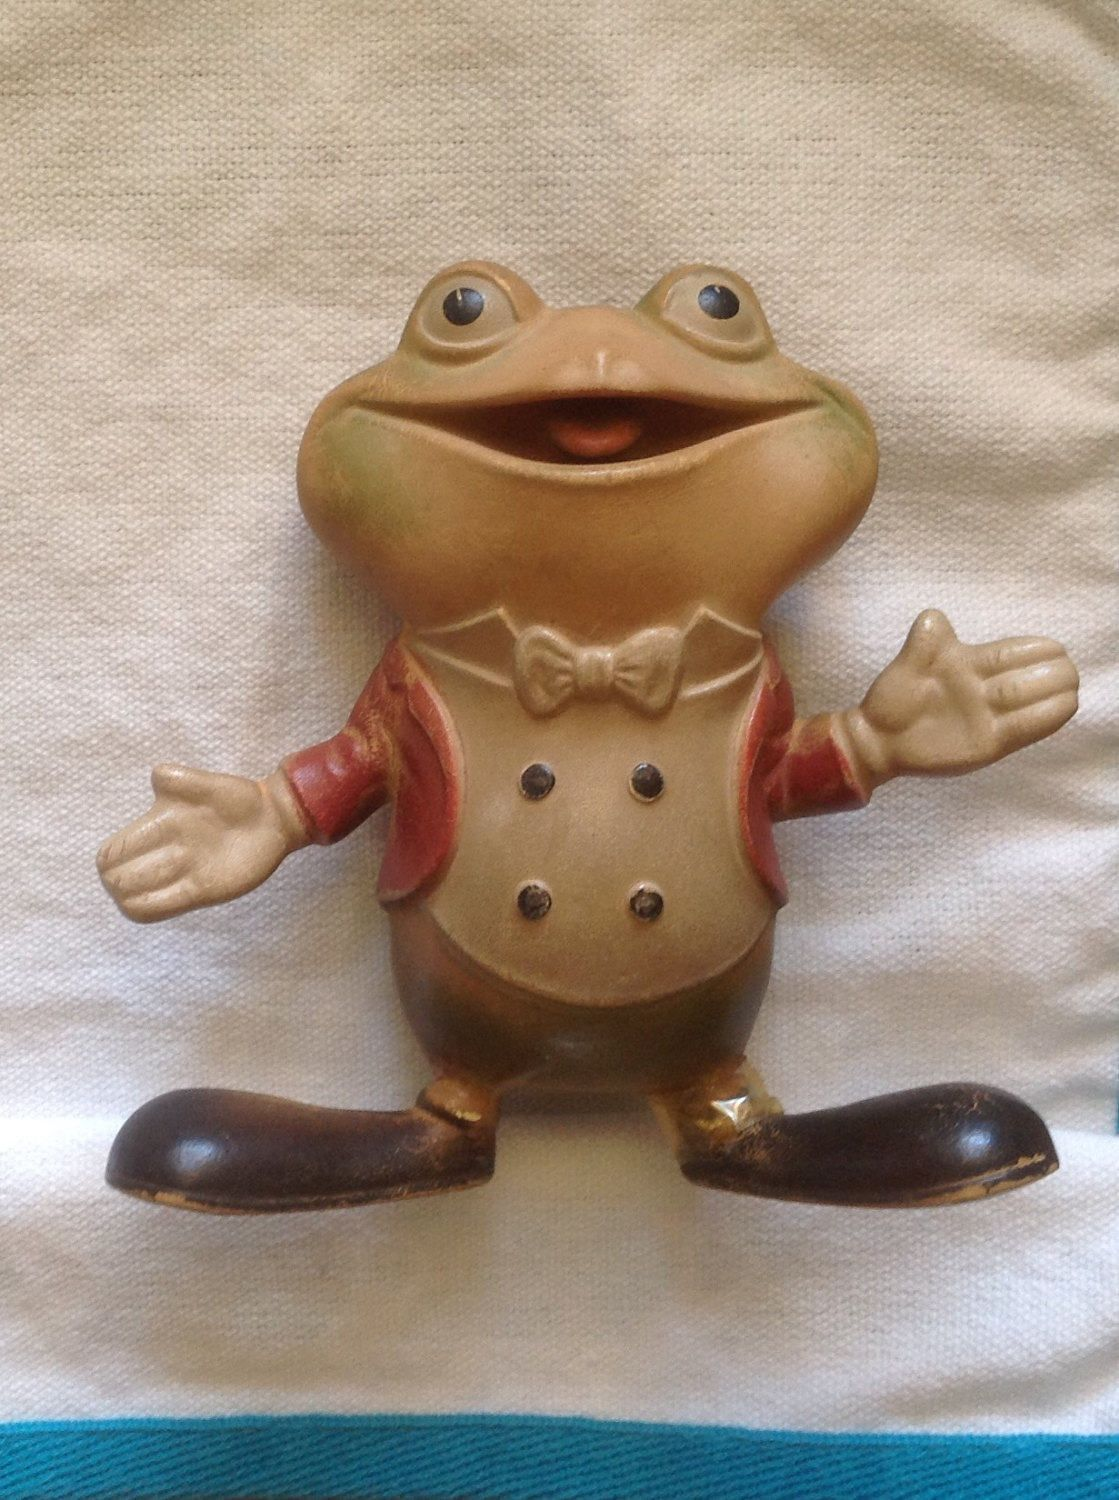 Rempel rubber toy / Froggy the Gremlin / 1940s rubber squeak toy ...